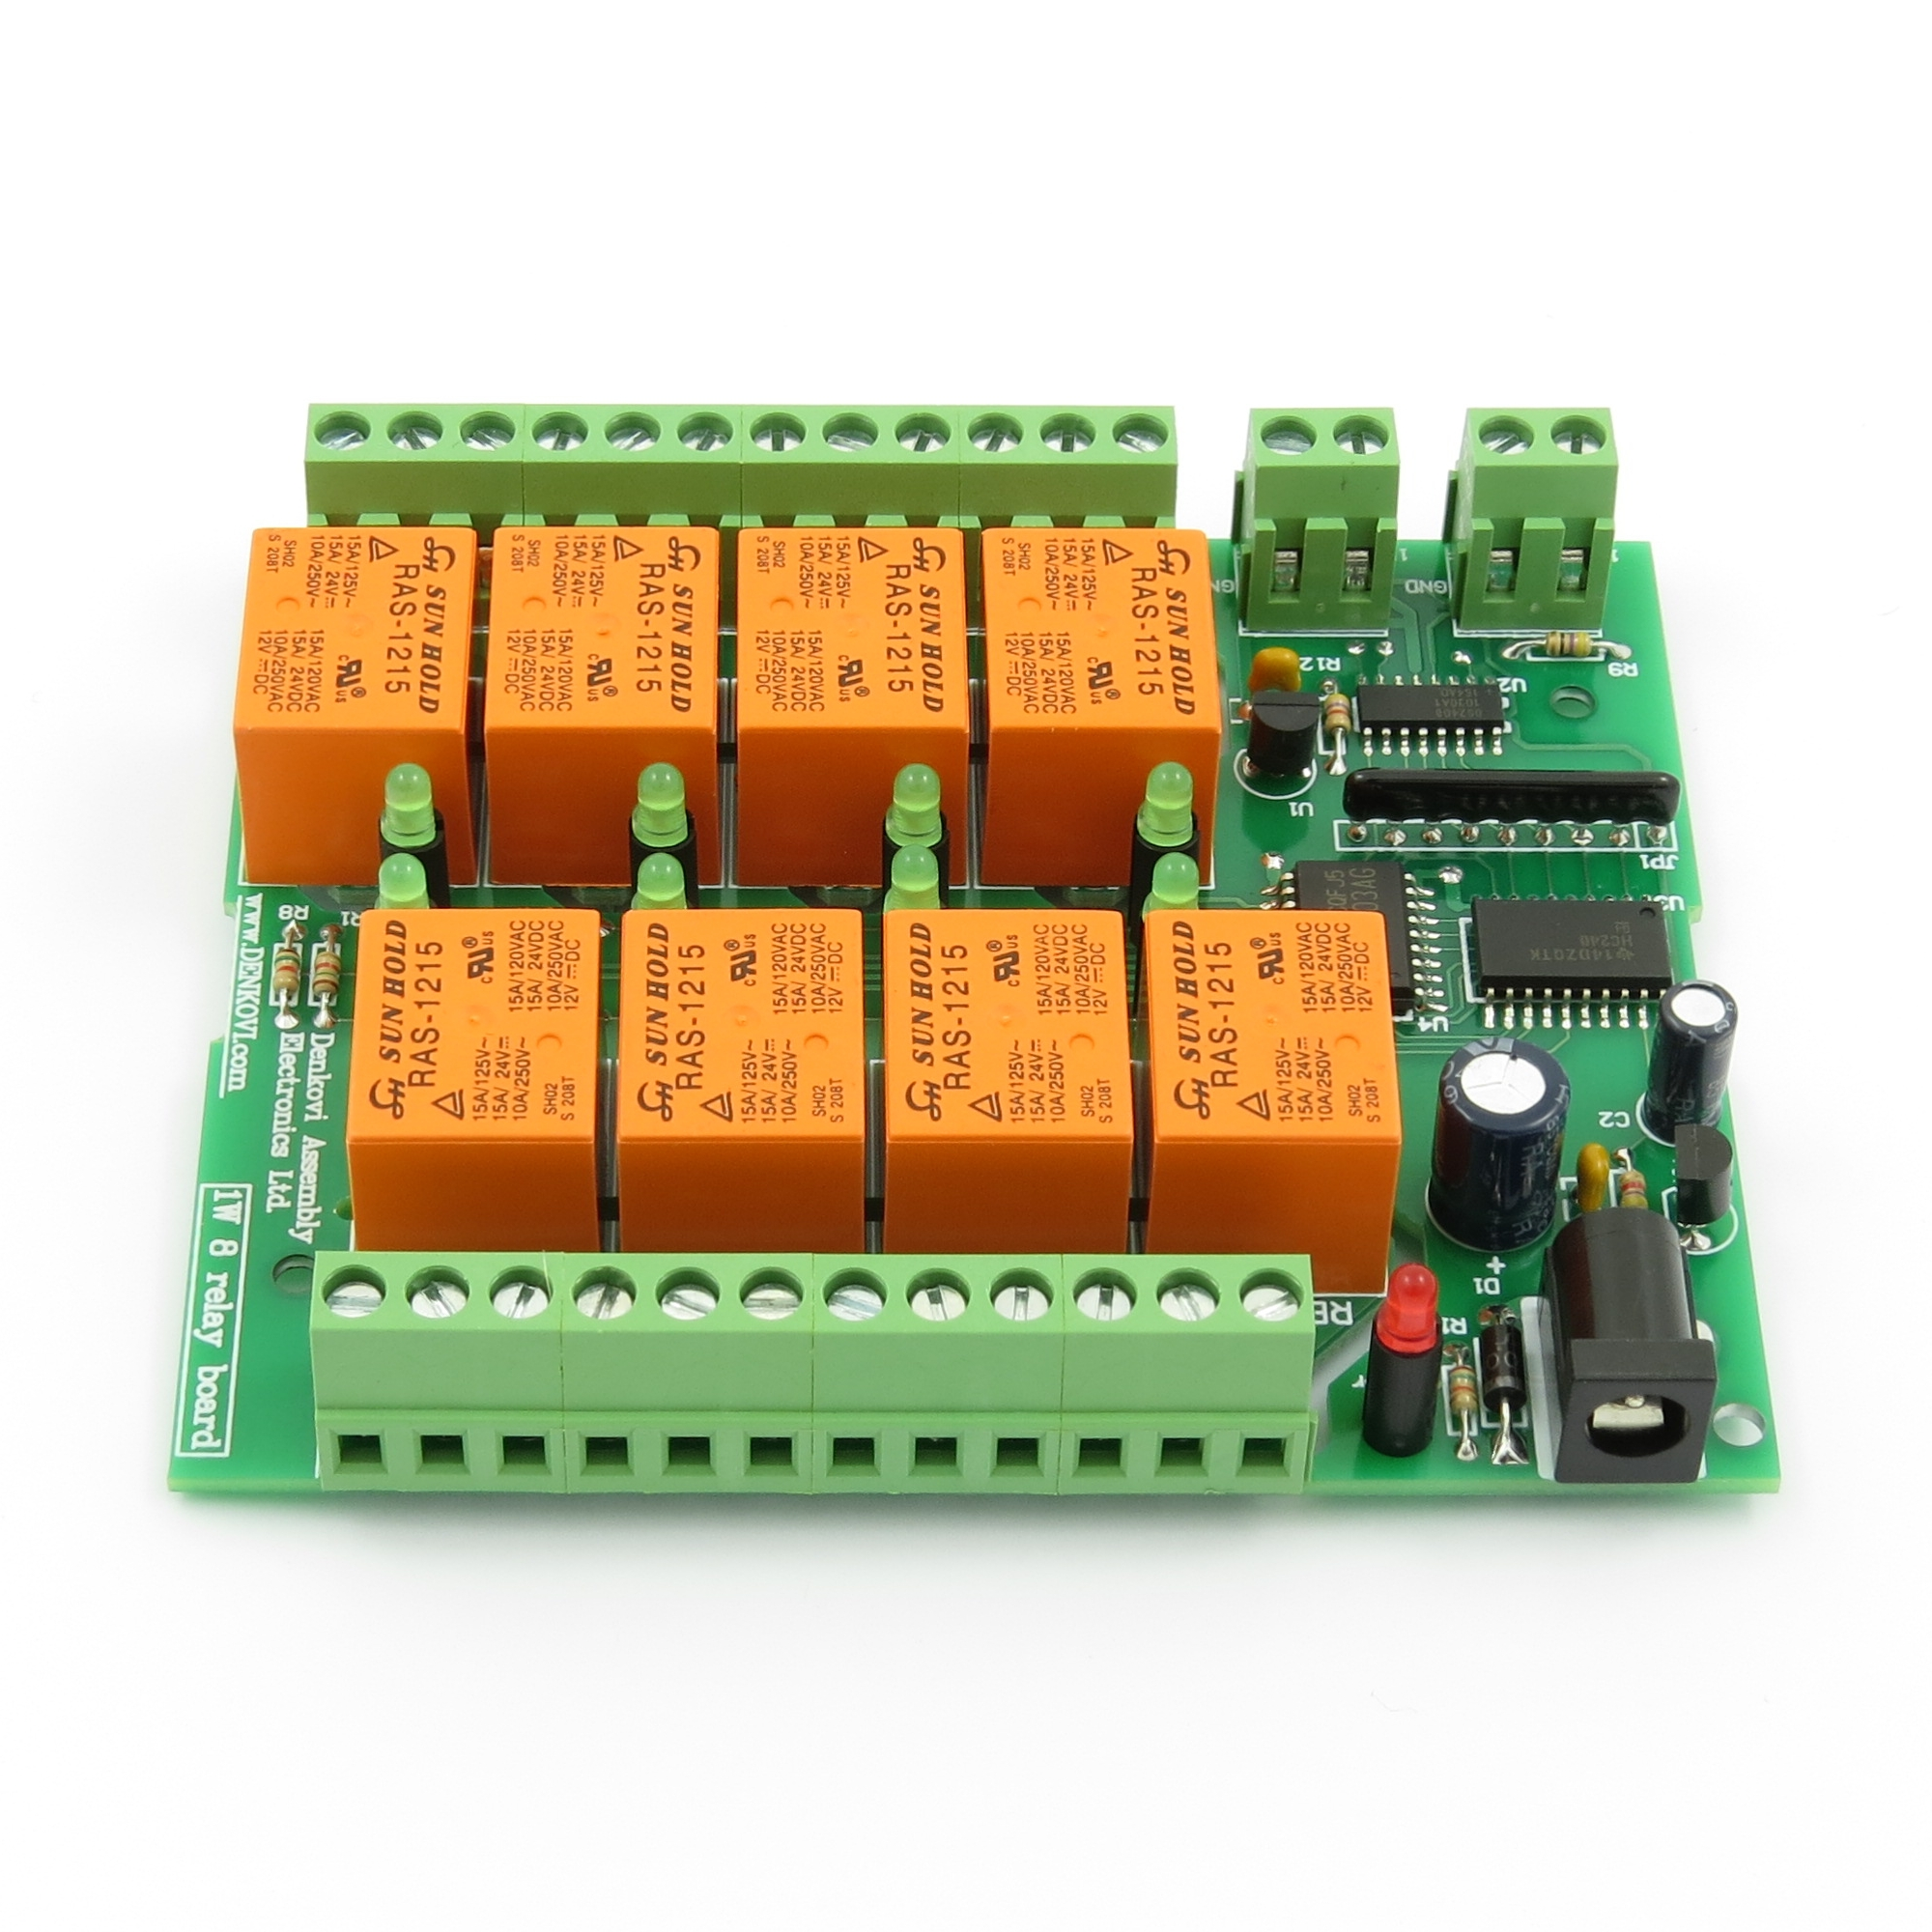 1 Wire 8 Channel Relay Module Board Based On Dallas Ds2408 Chipset Wiring A Denkovi